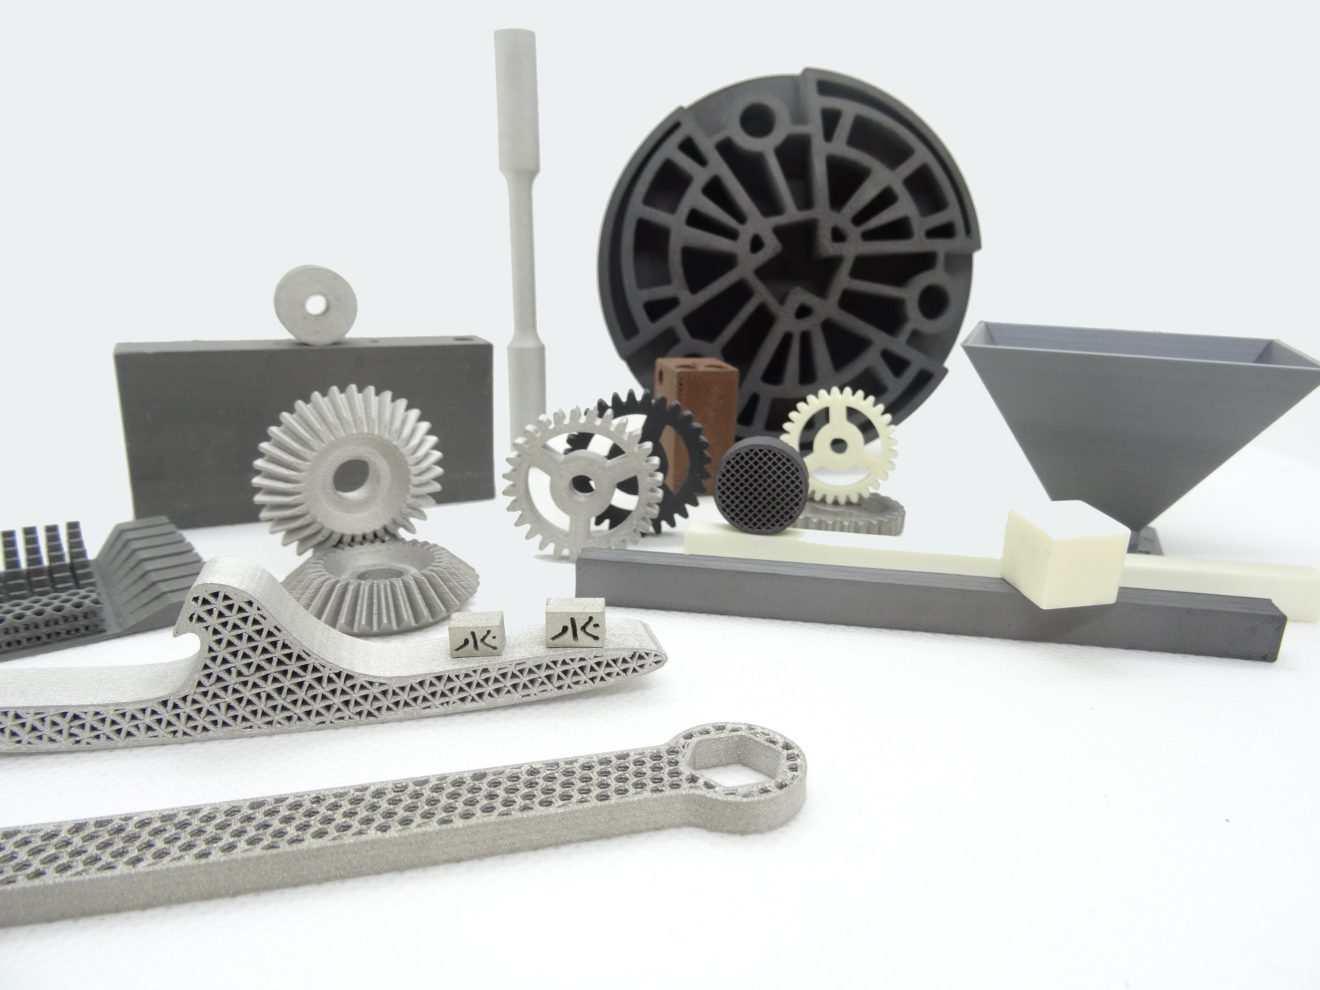 A Second Innings for Material Extrusion - Interview with Siddharth Tiwari